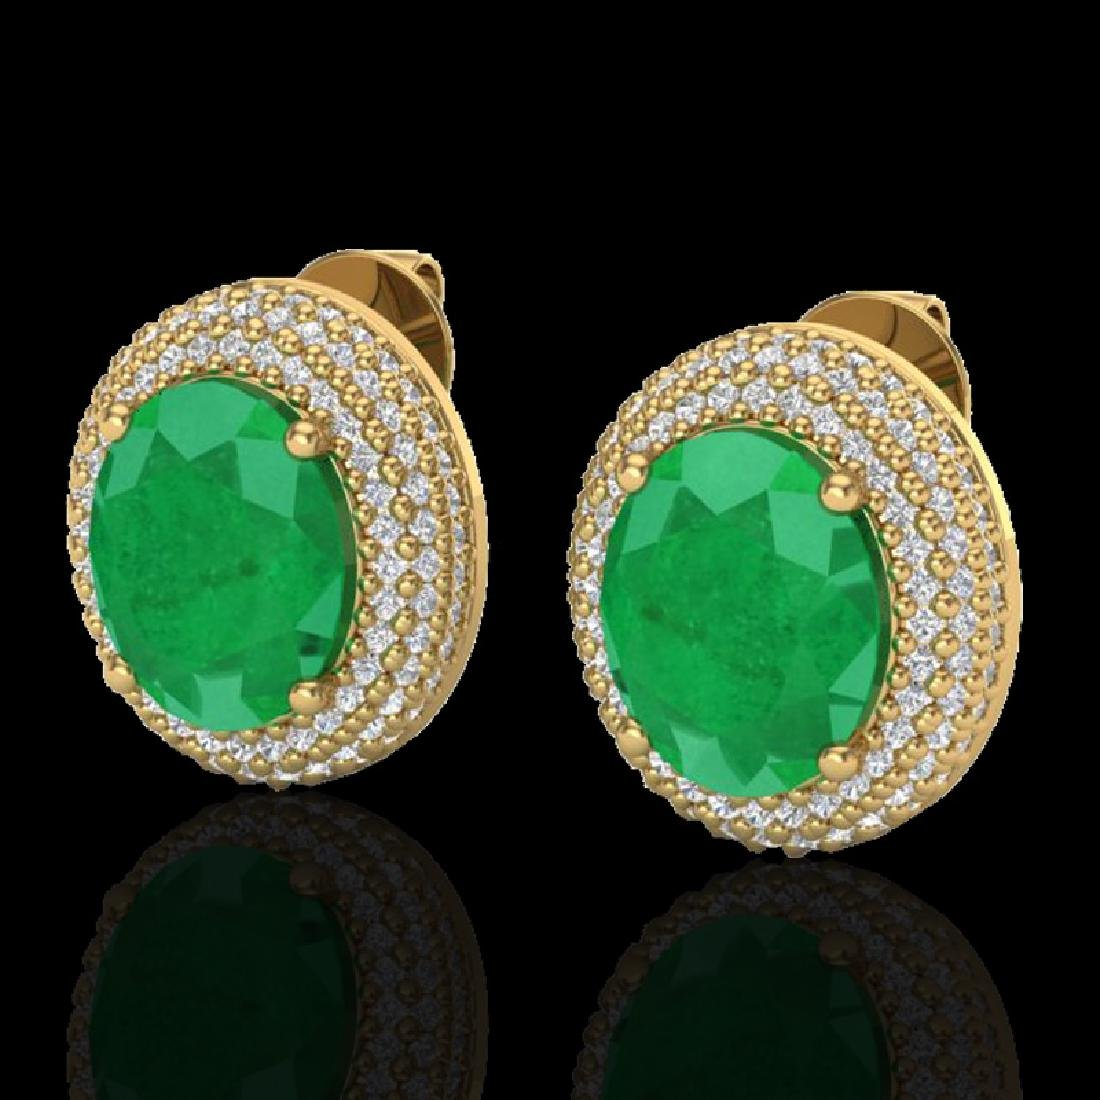 9.20 CTW Emerald & Micro Pave VS/SI Diamond Earrings